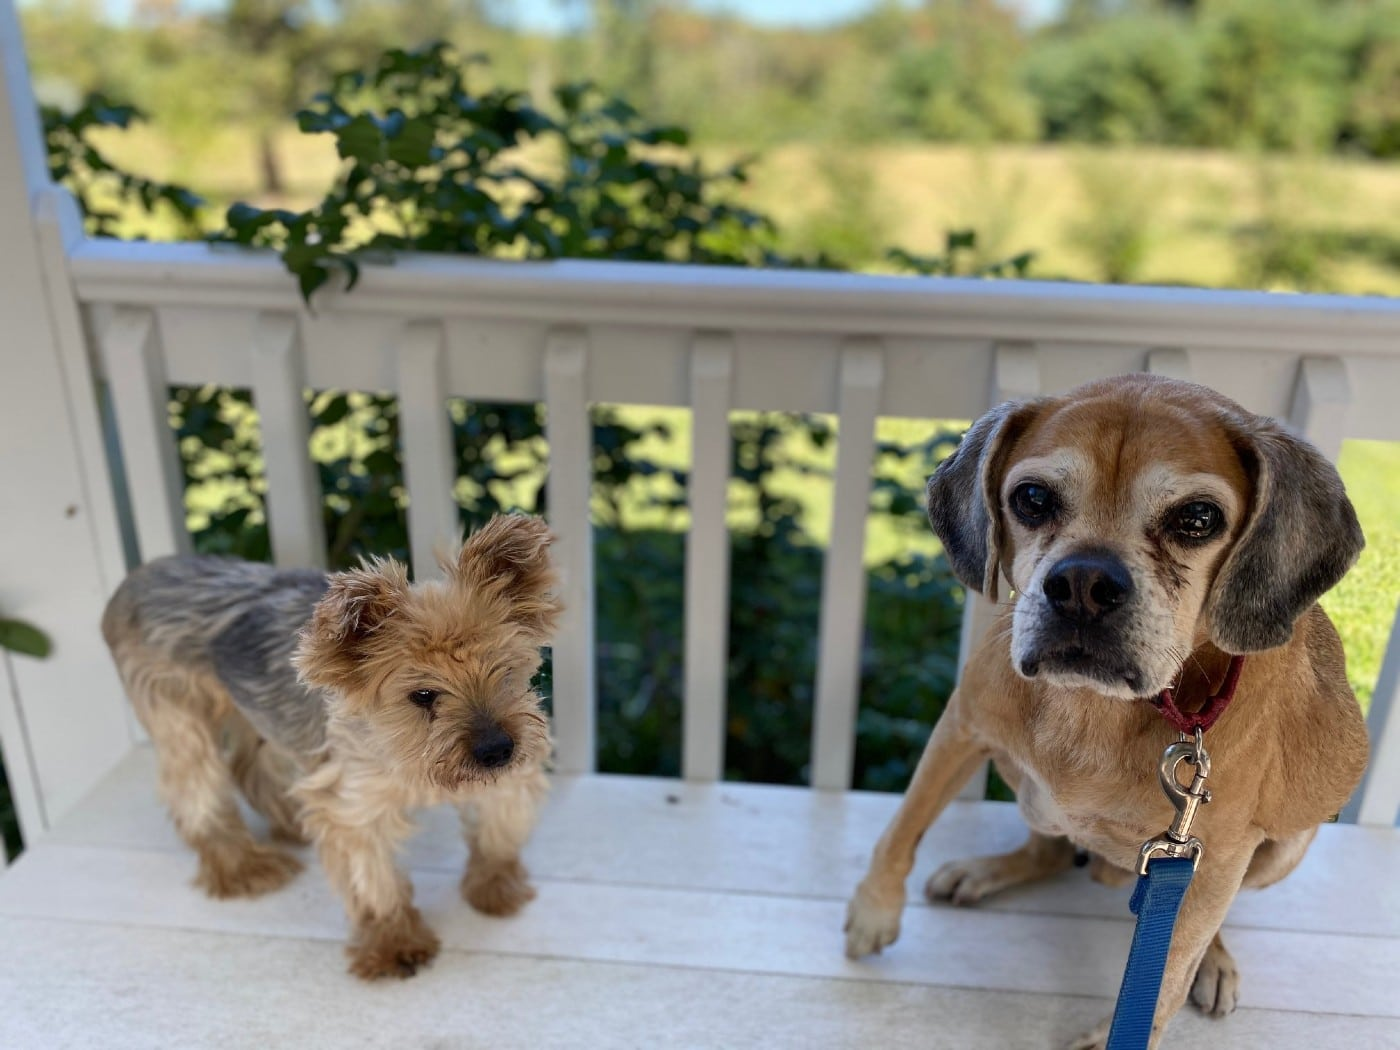 See the Retirement Home Where Senior Dogs Get to Live Out Their Golden Years